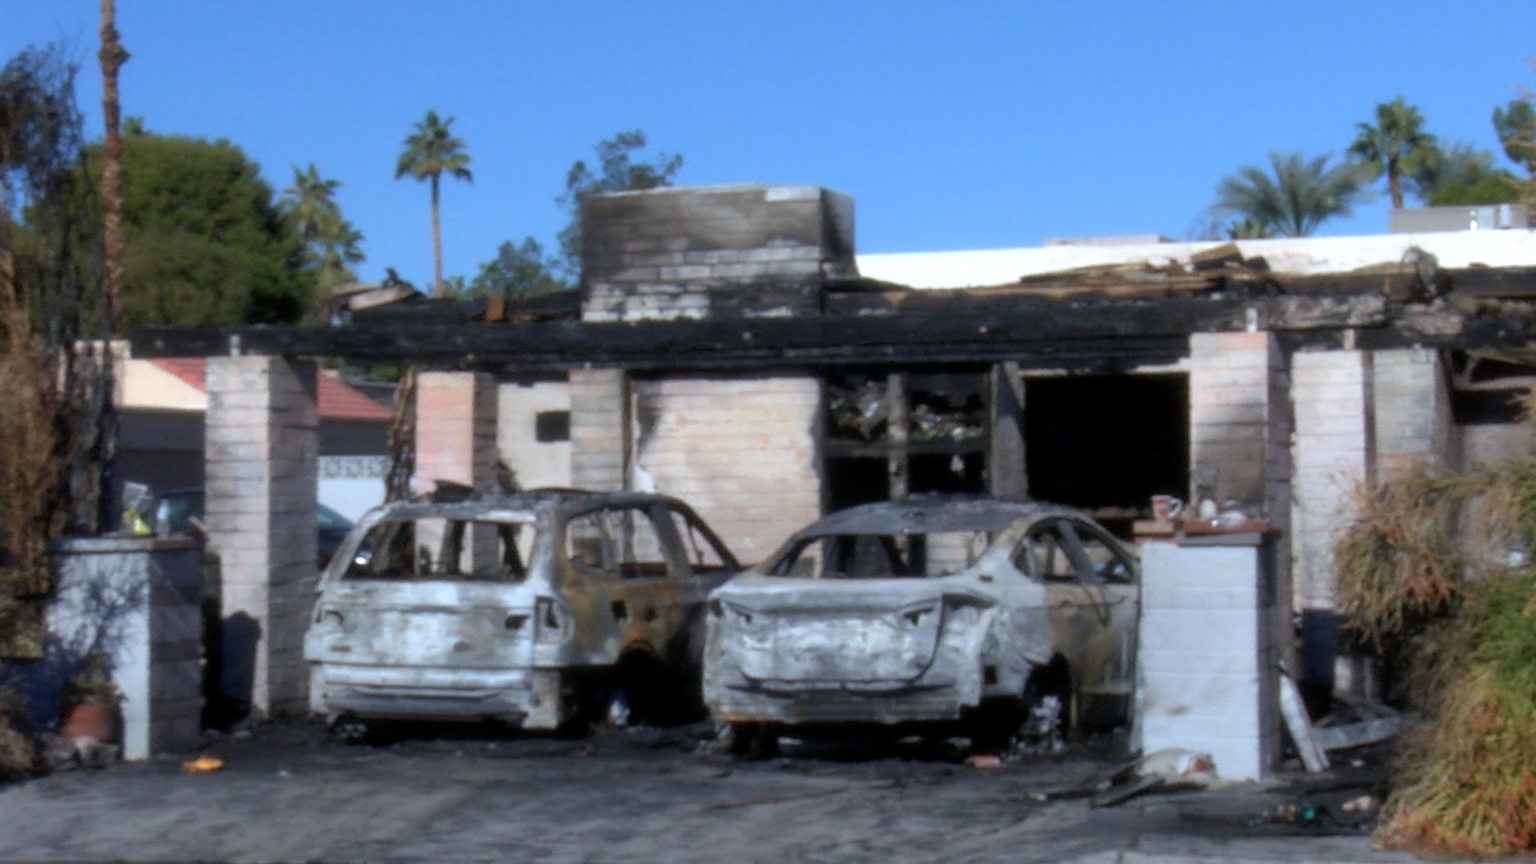 Family Of 7 Loses Home in Fire